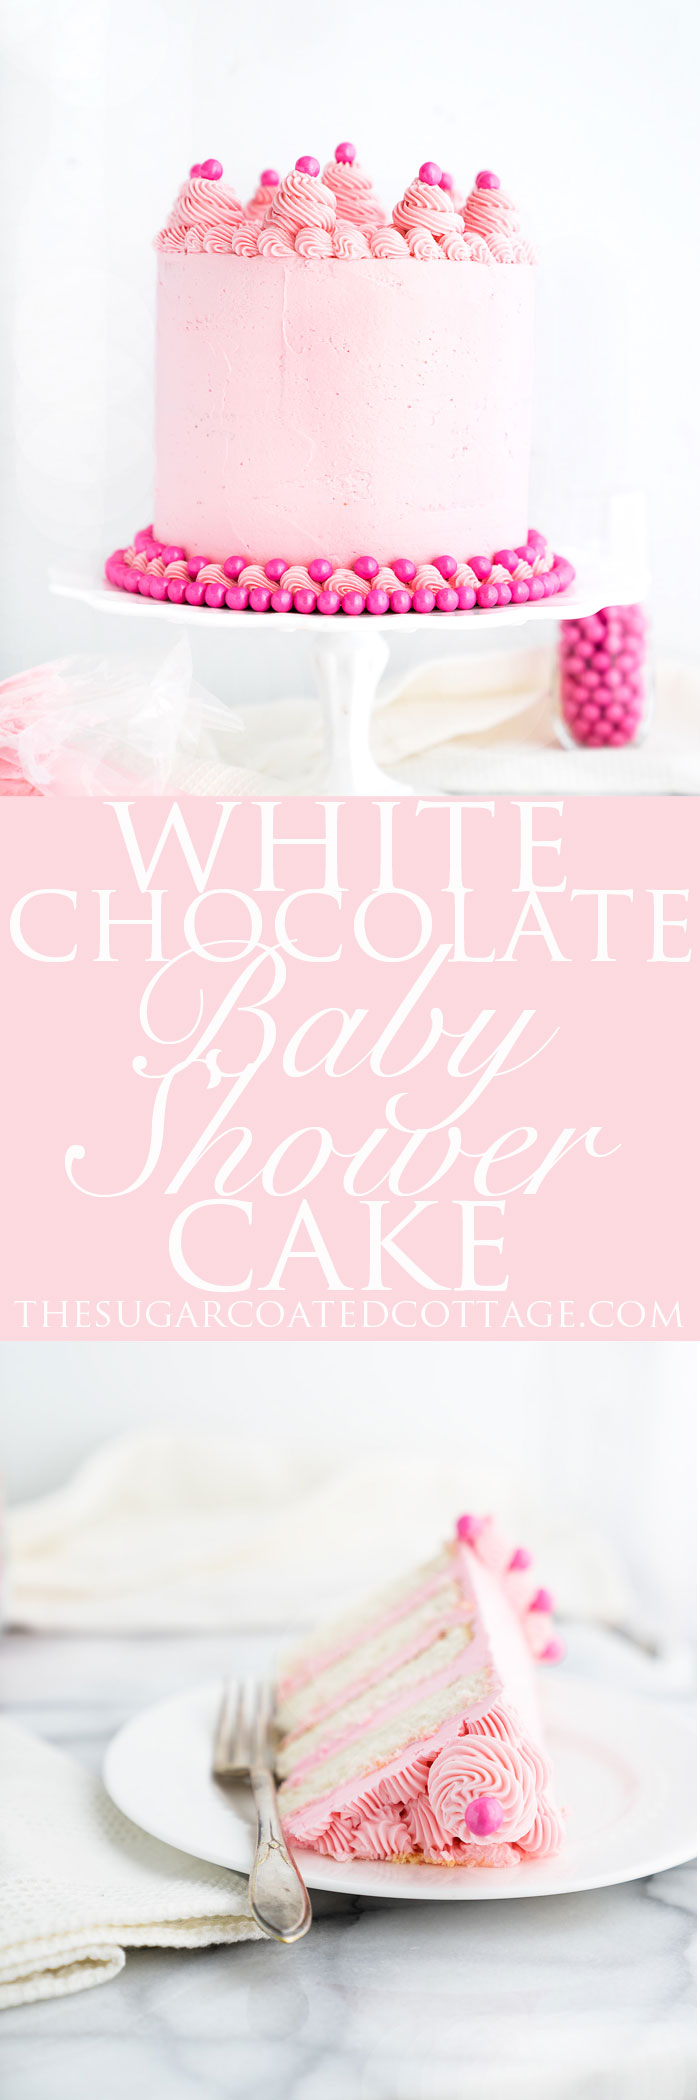 Inspirational It's A Girl! Baby Shower Cake And Virtual Baby Shower - with regard to Baby Shower Cake Recipes